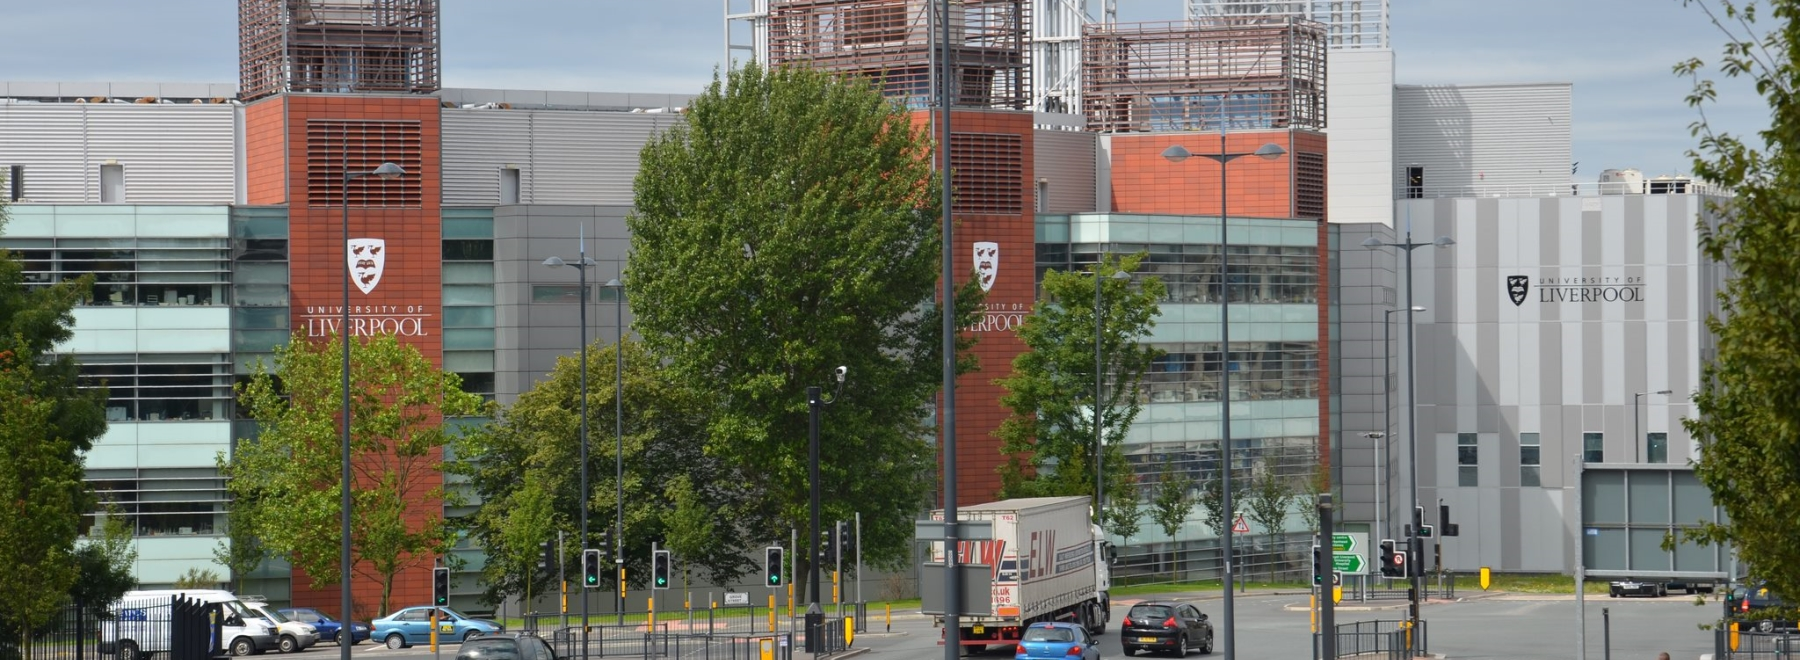 University of Liverpool header